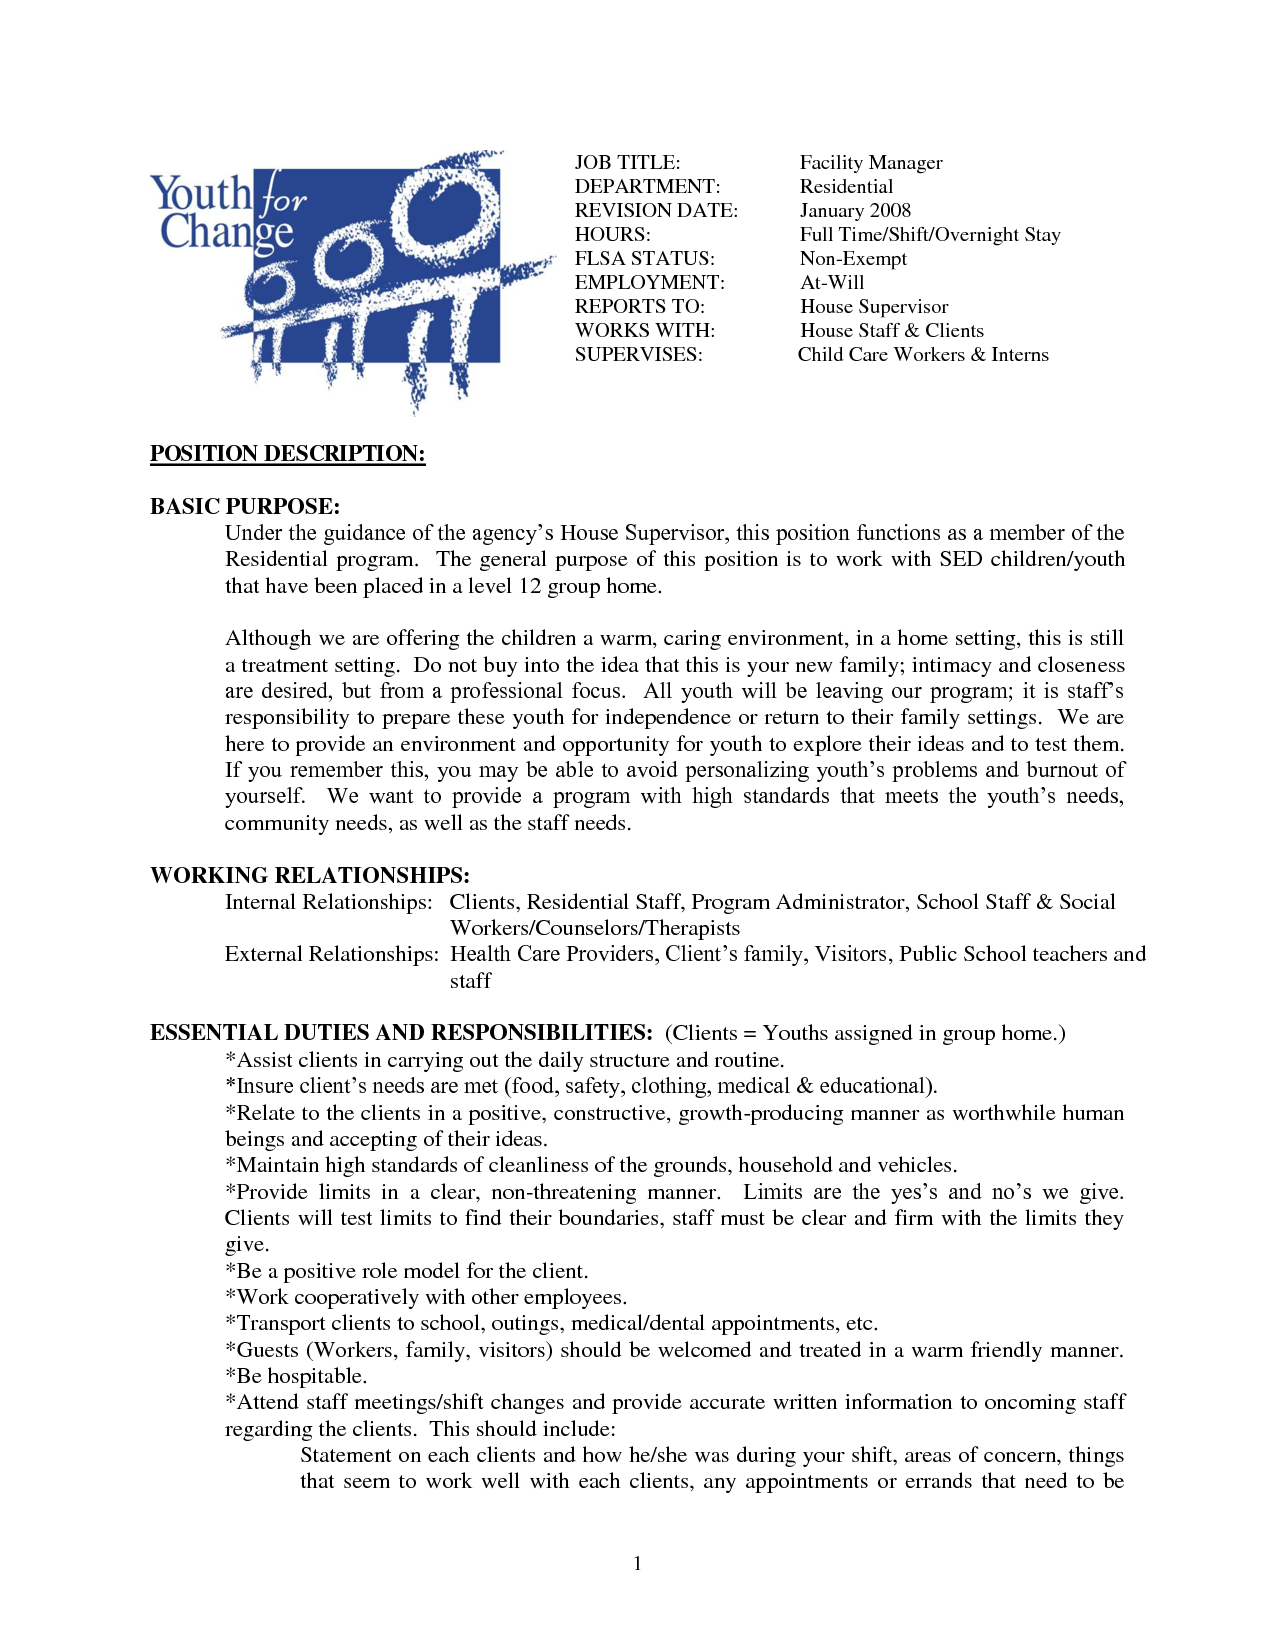 Resume For Housekeeping Cleaning Business Resume And Job Description House